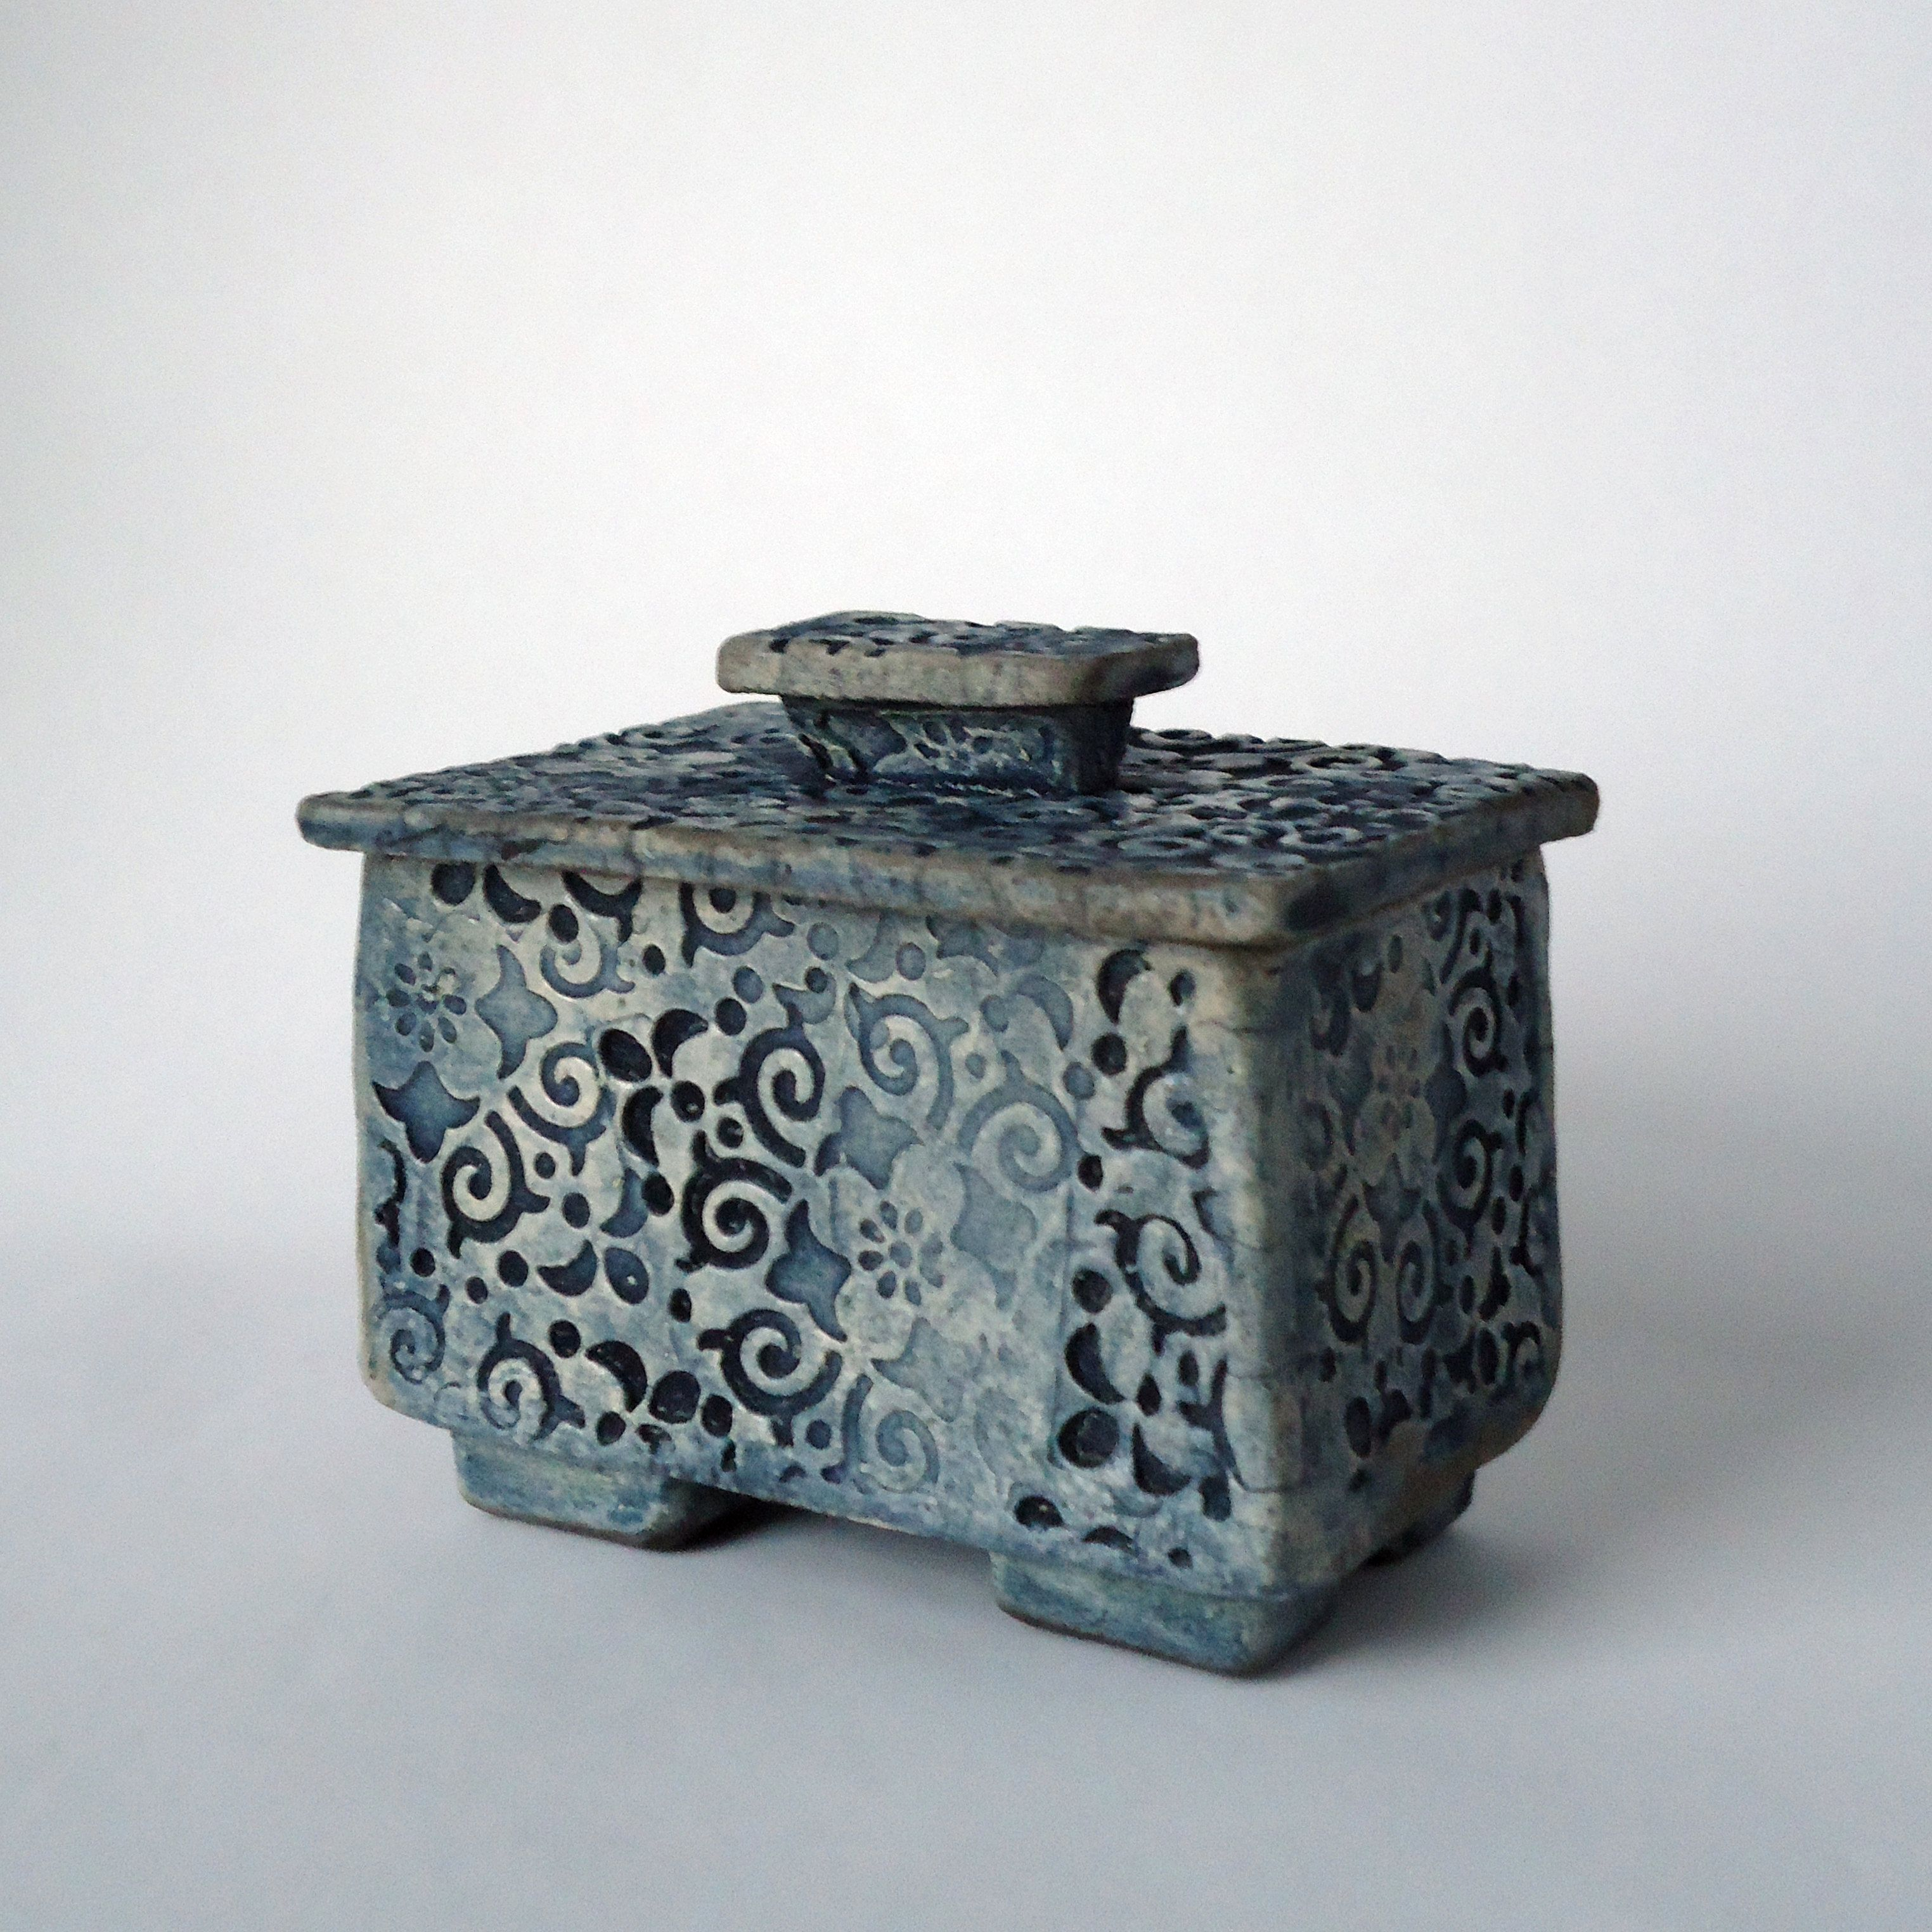 Browse Unique Items From Soleyceramics On Etsy A Global Marketplace Of Handmade Vintage And Creative Goods Ceramic Pottery Raku Ceramics Ceramic Boxes